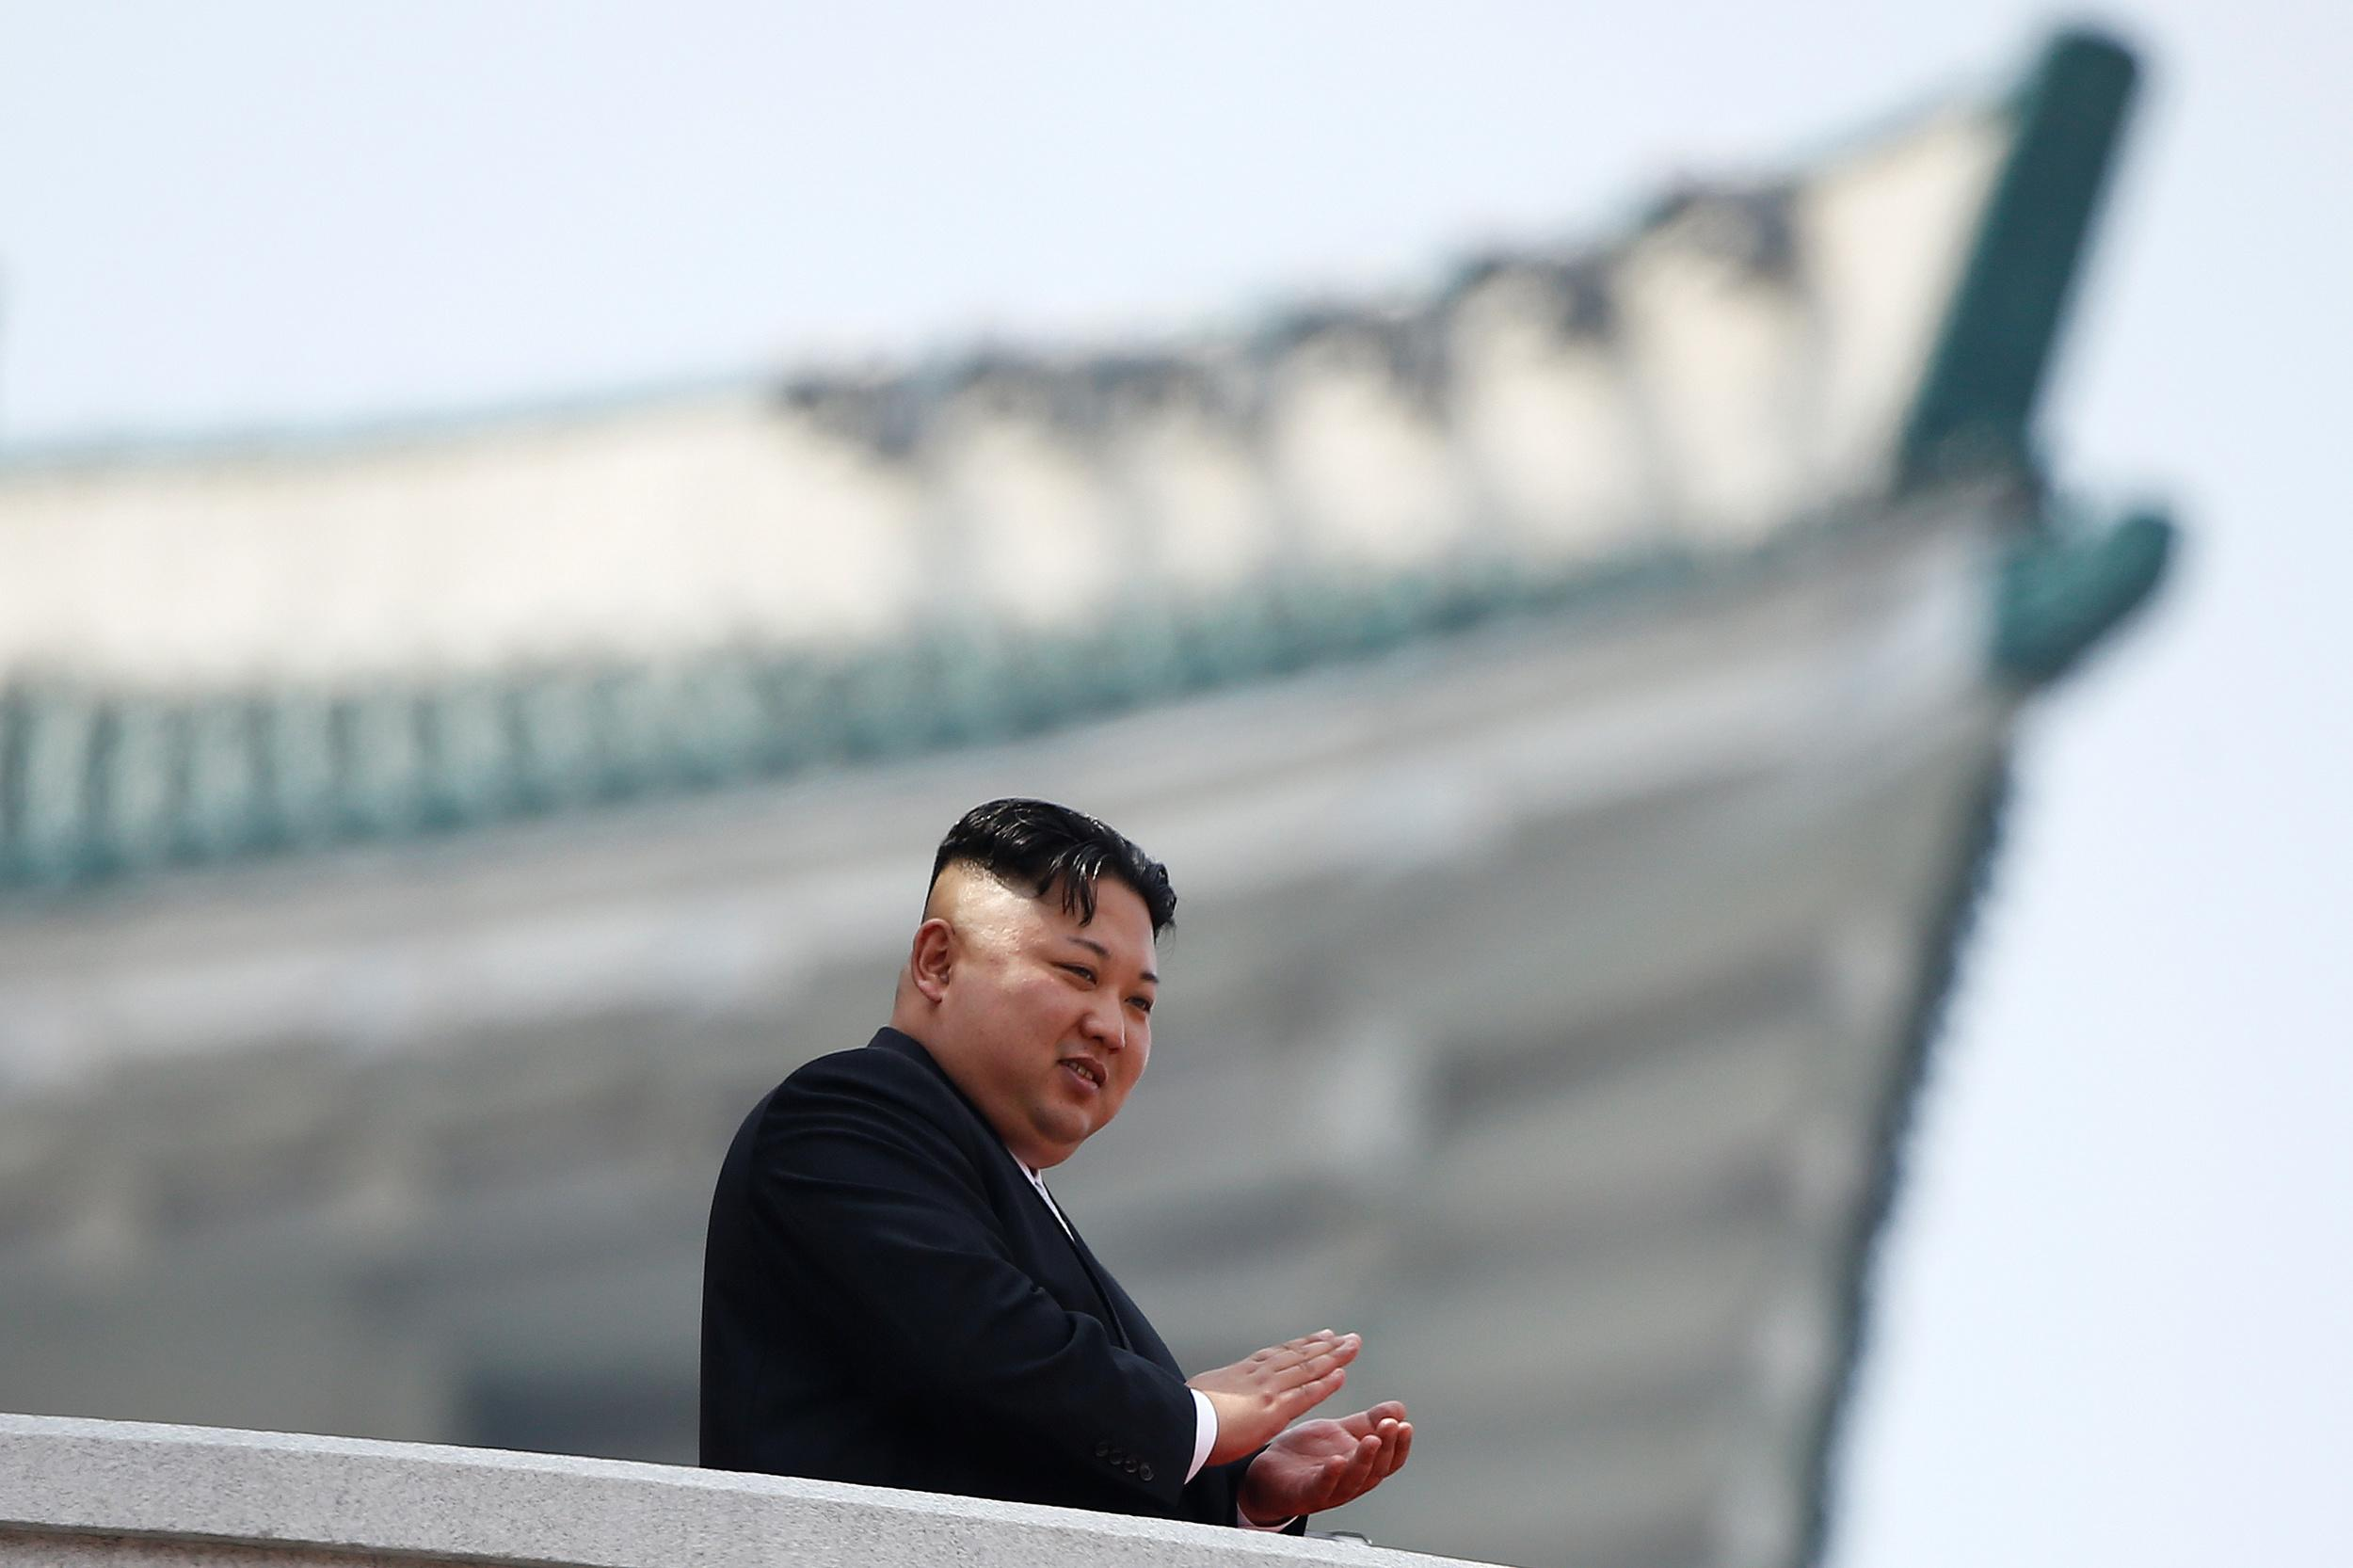 North Korean leader Kim Jong Un applauds during a military parade marking the 105th birth anniversary of the country's founding father, Kim Il Sung, in Pyongyang April 15, 2017. REUTERS/Damir Sagolj